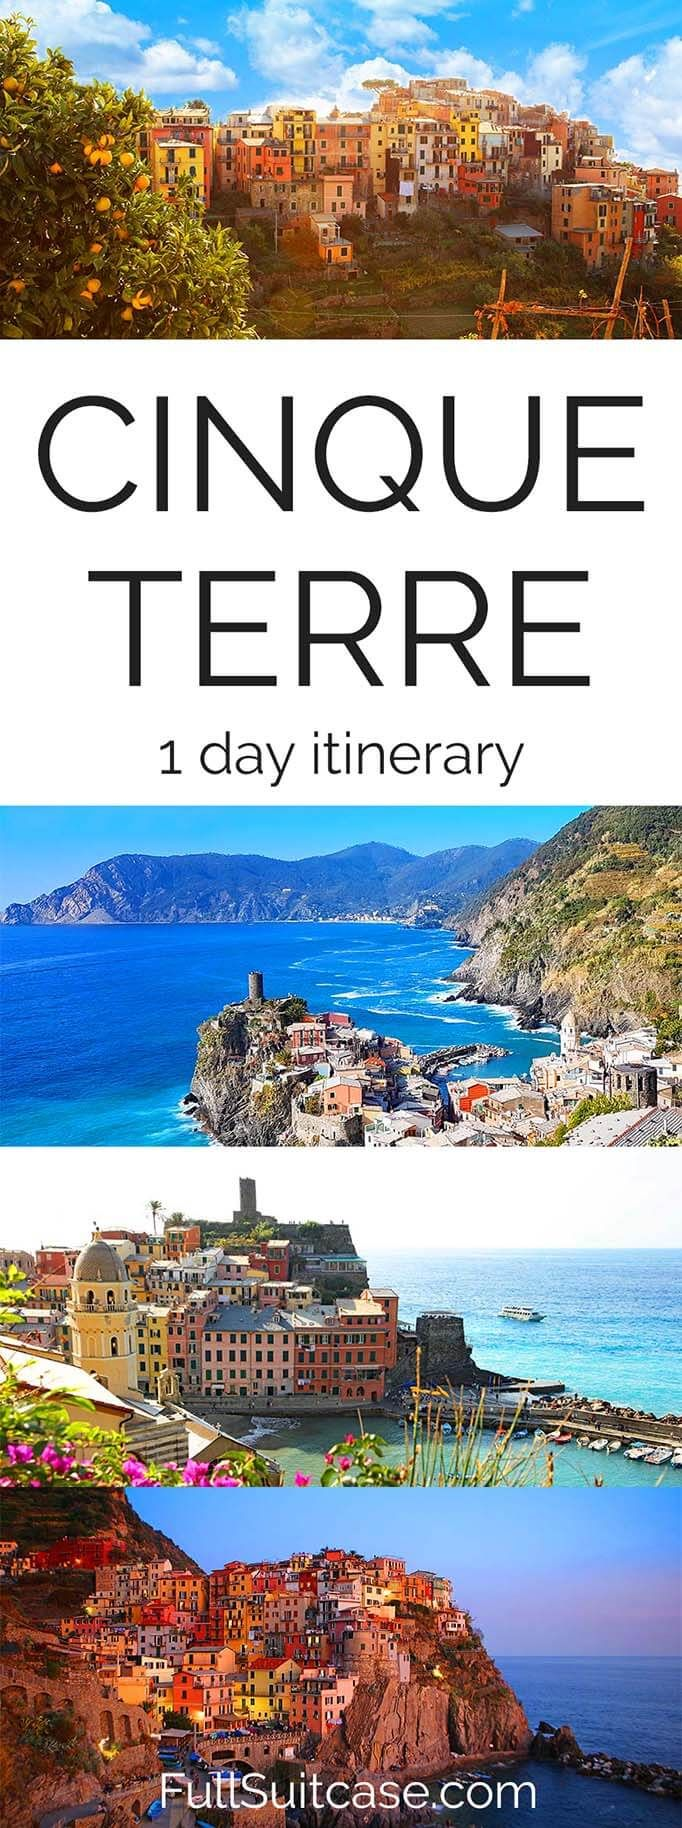 One day itinerary for Cinque Terre in Italy #italy #cinqueterre